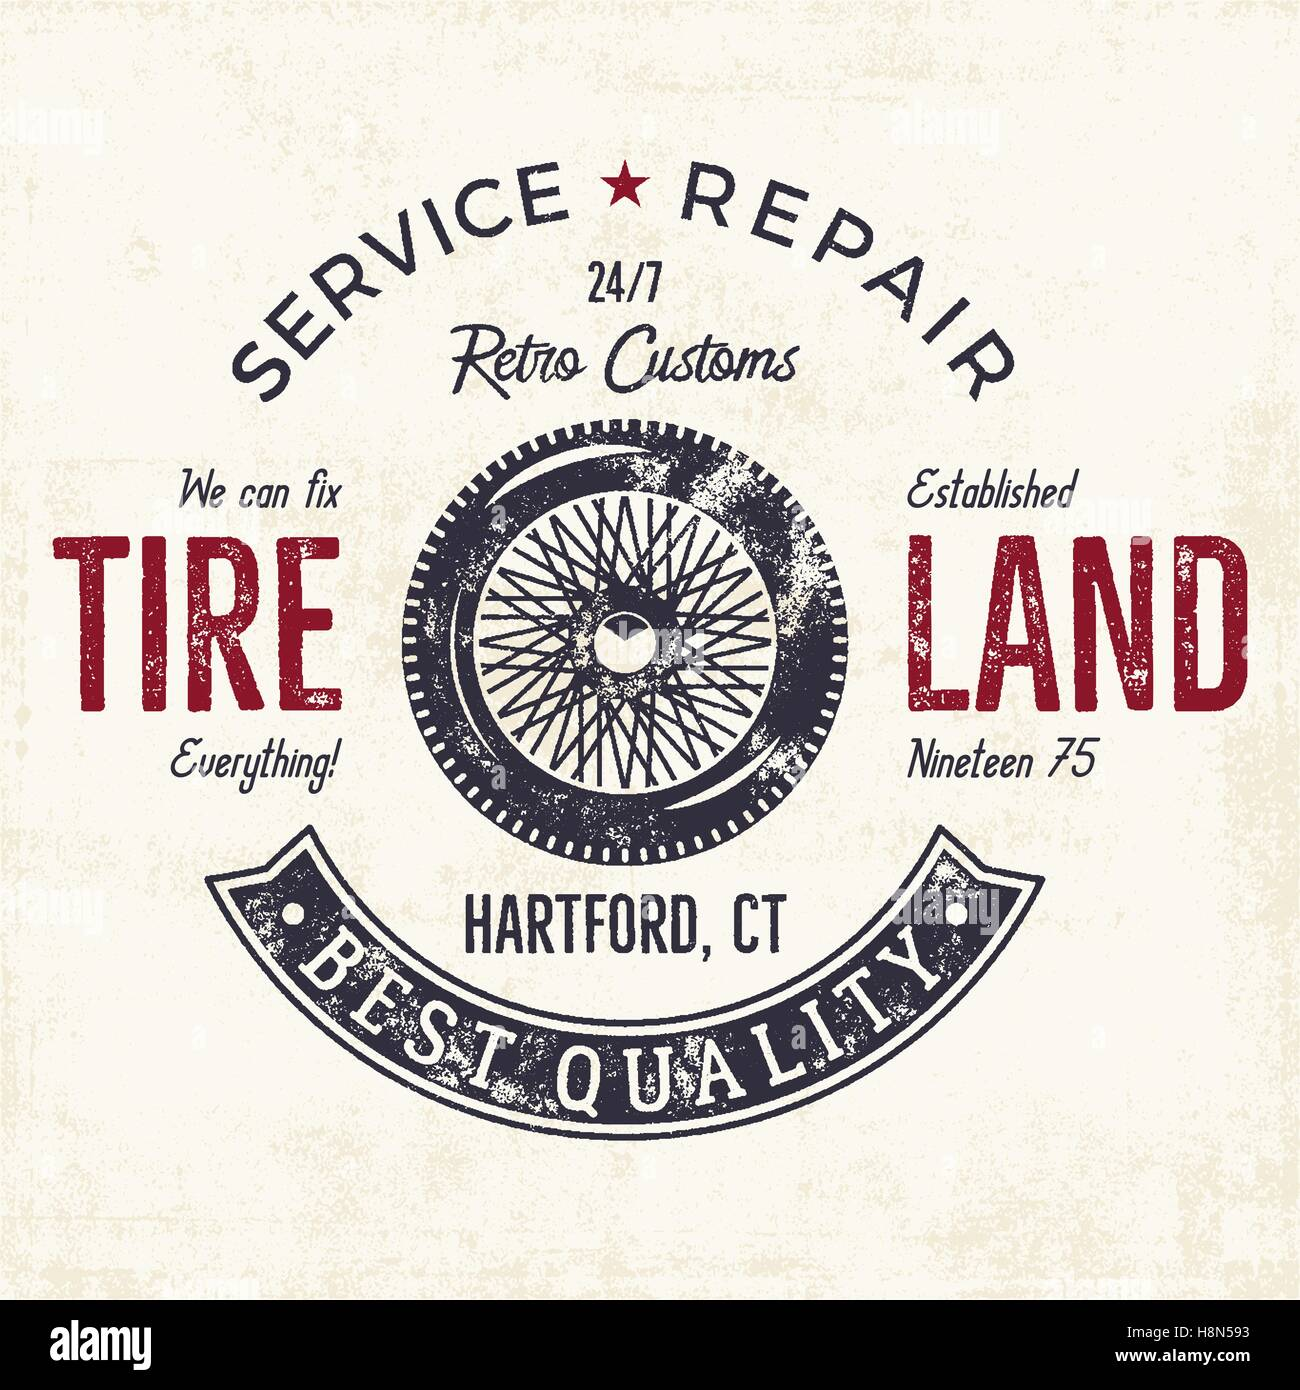 Vintage label design. Tire service emblem in monochrome retro style with vector old wheel and typography elements. - Stock Vector